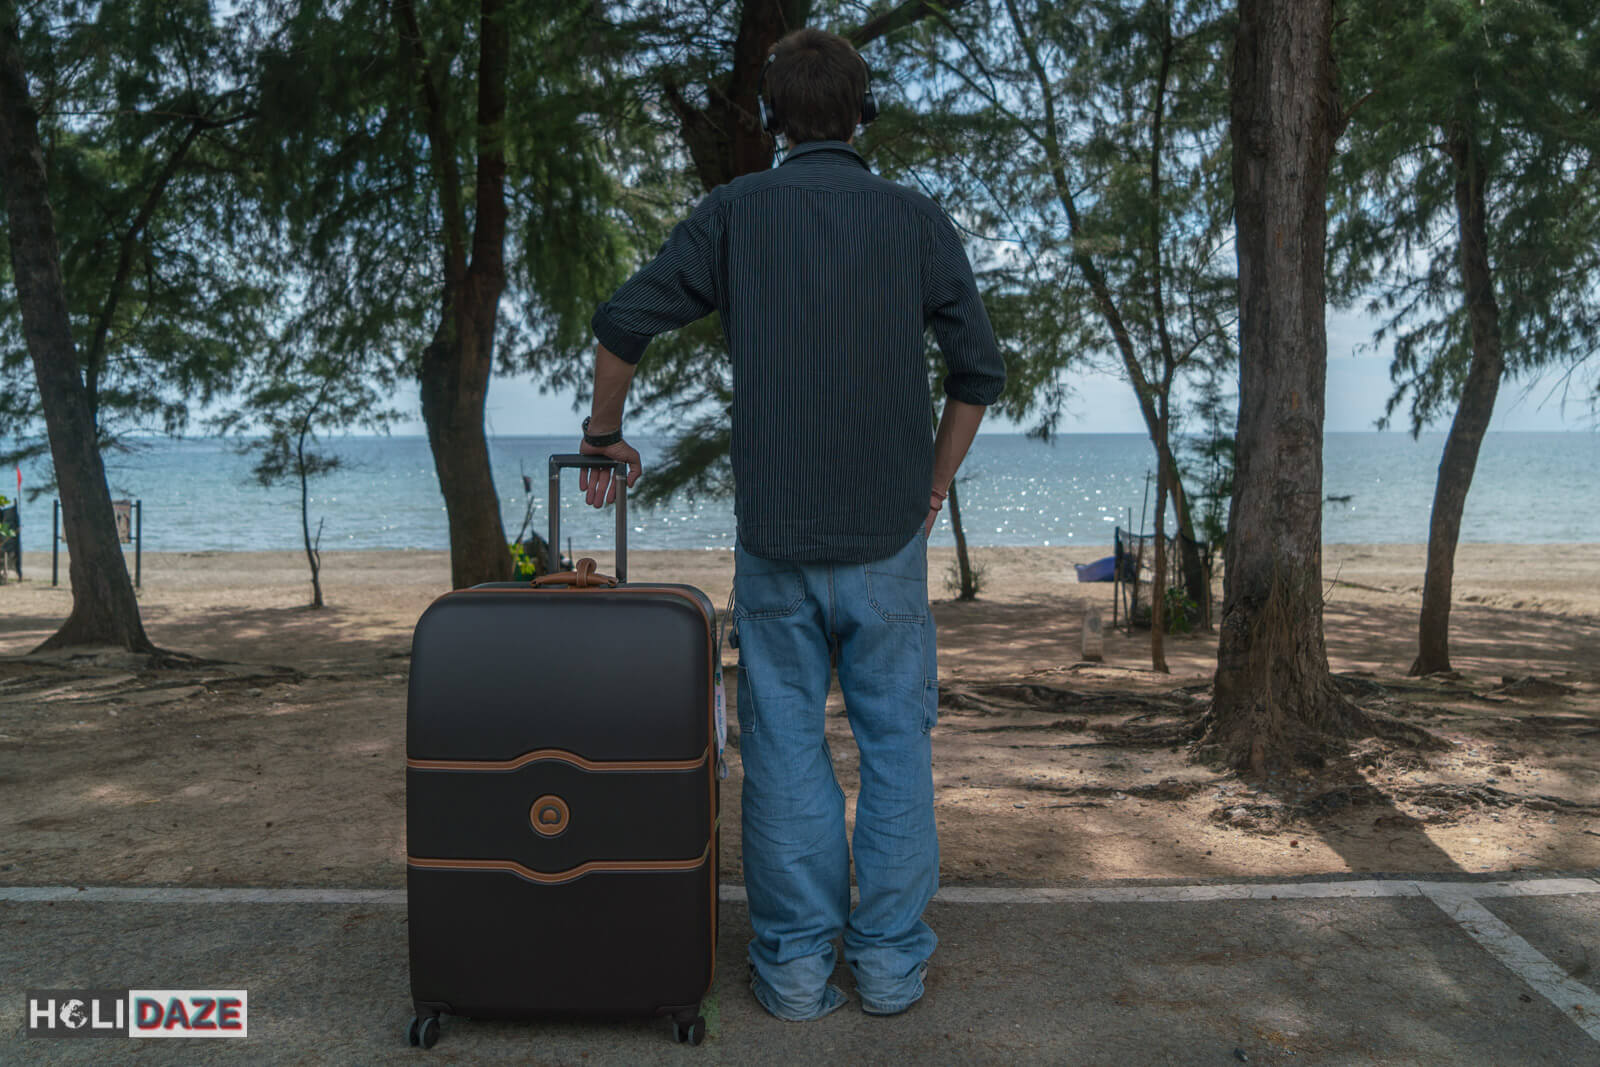 My luggage and I made it safely to Koh Samet in Thailand